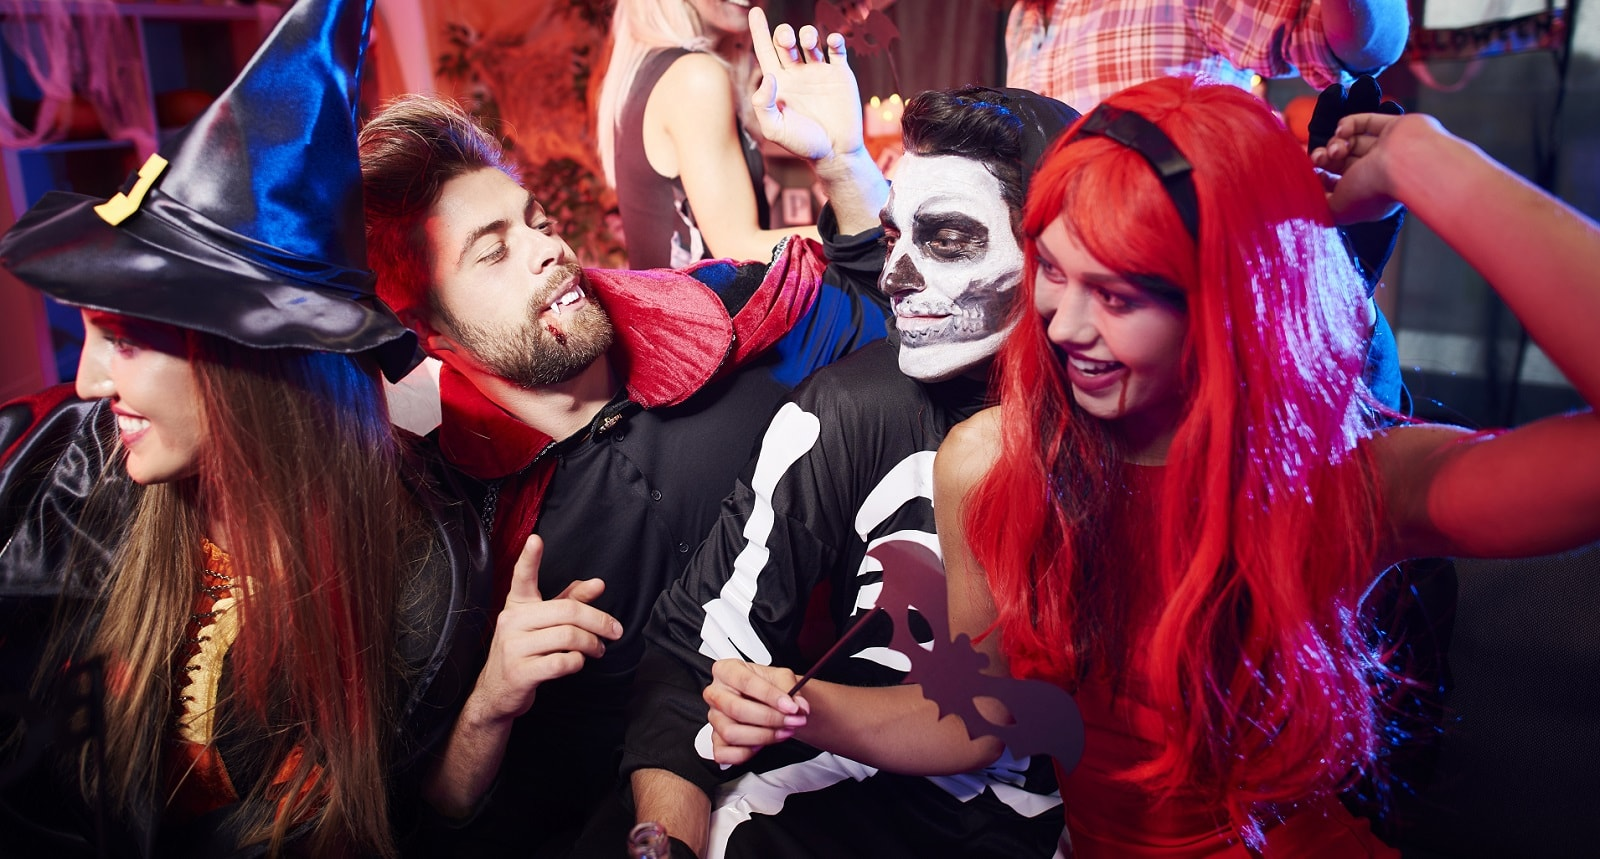 Club Event - Halloween Cabin Fever - EventBookings